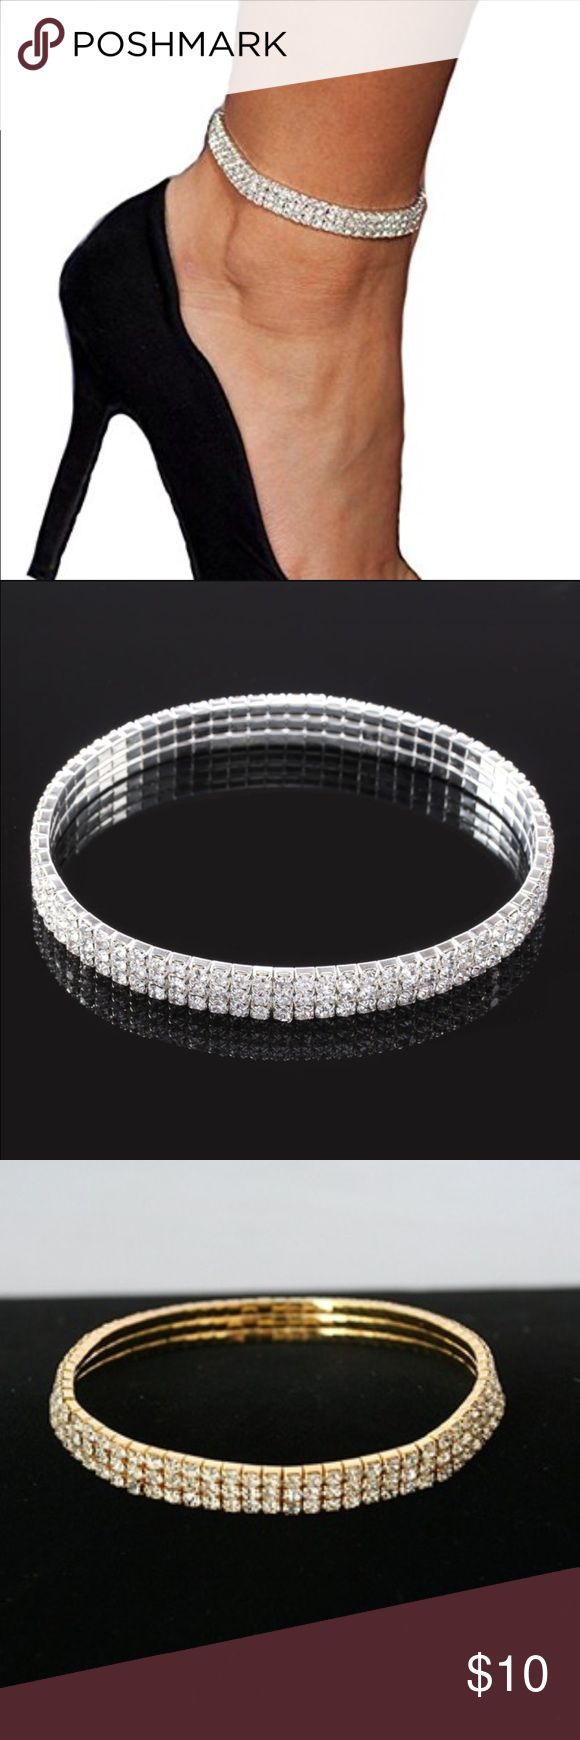 🆕New 3 Strand Tennis Ankle Stretch Bracelet Beautiful stretch tennis ankle bracelet in choice of silver or gold. This will look very classy with heels. Evolve Always Jewelry Bracelets